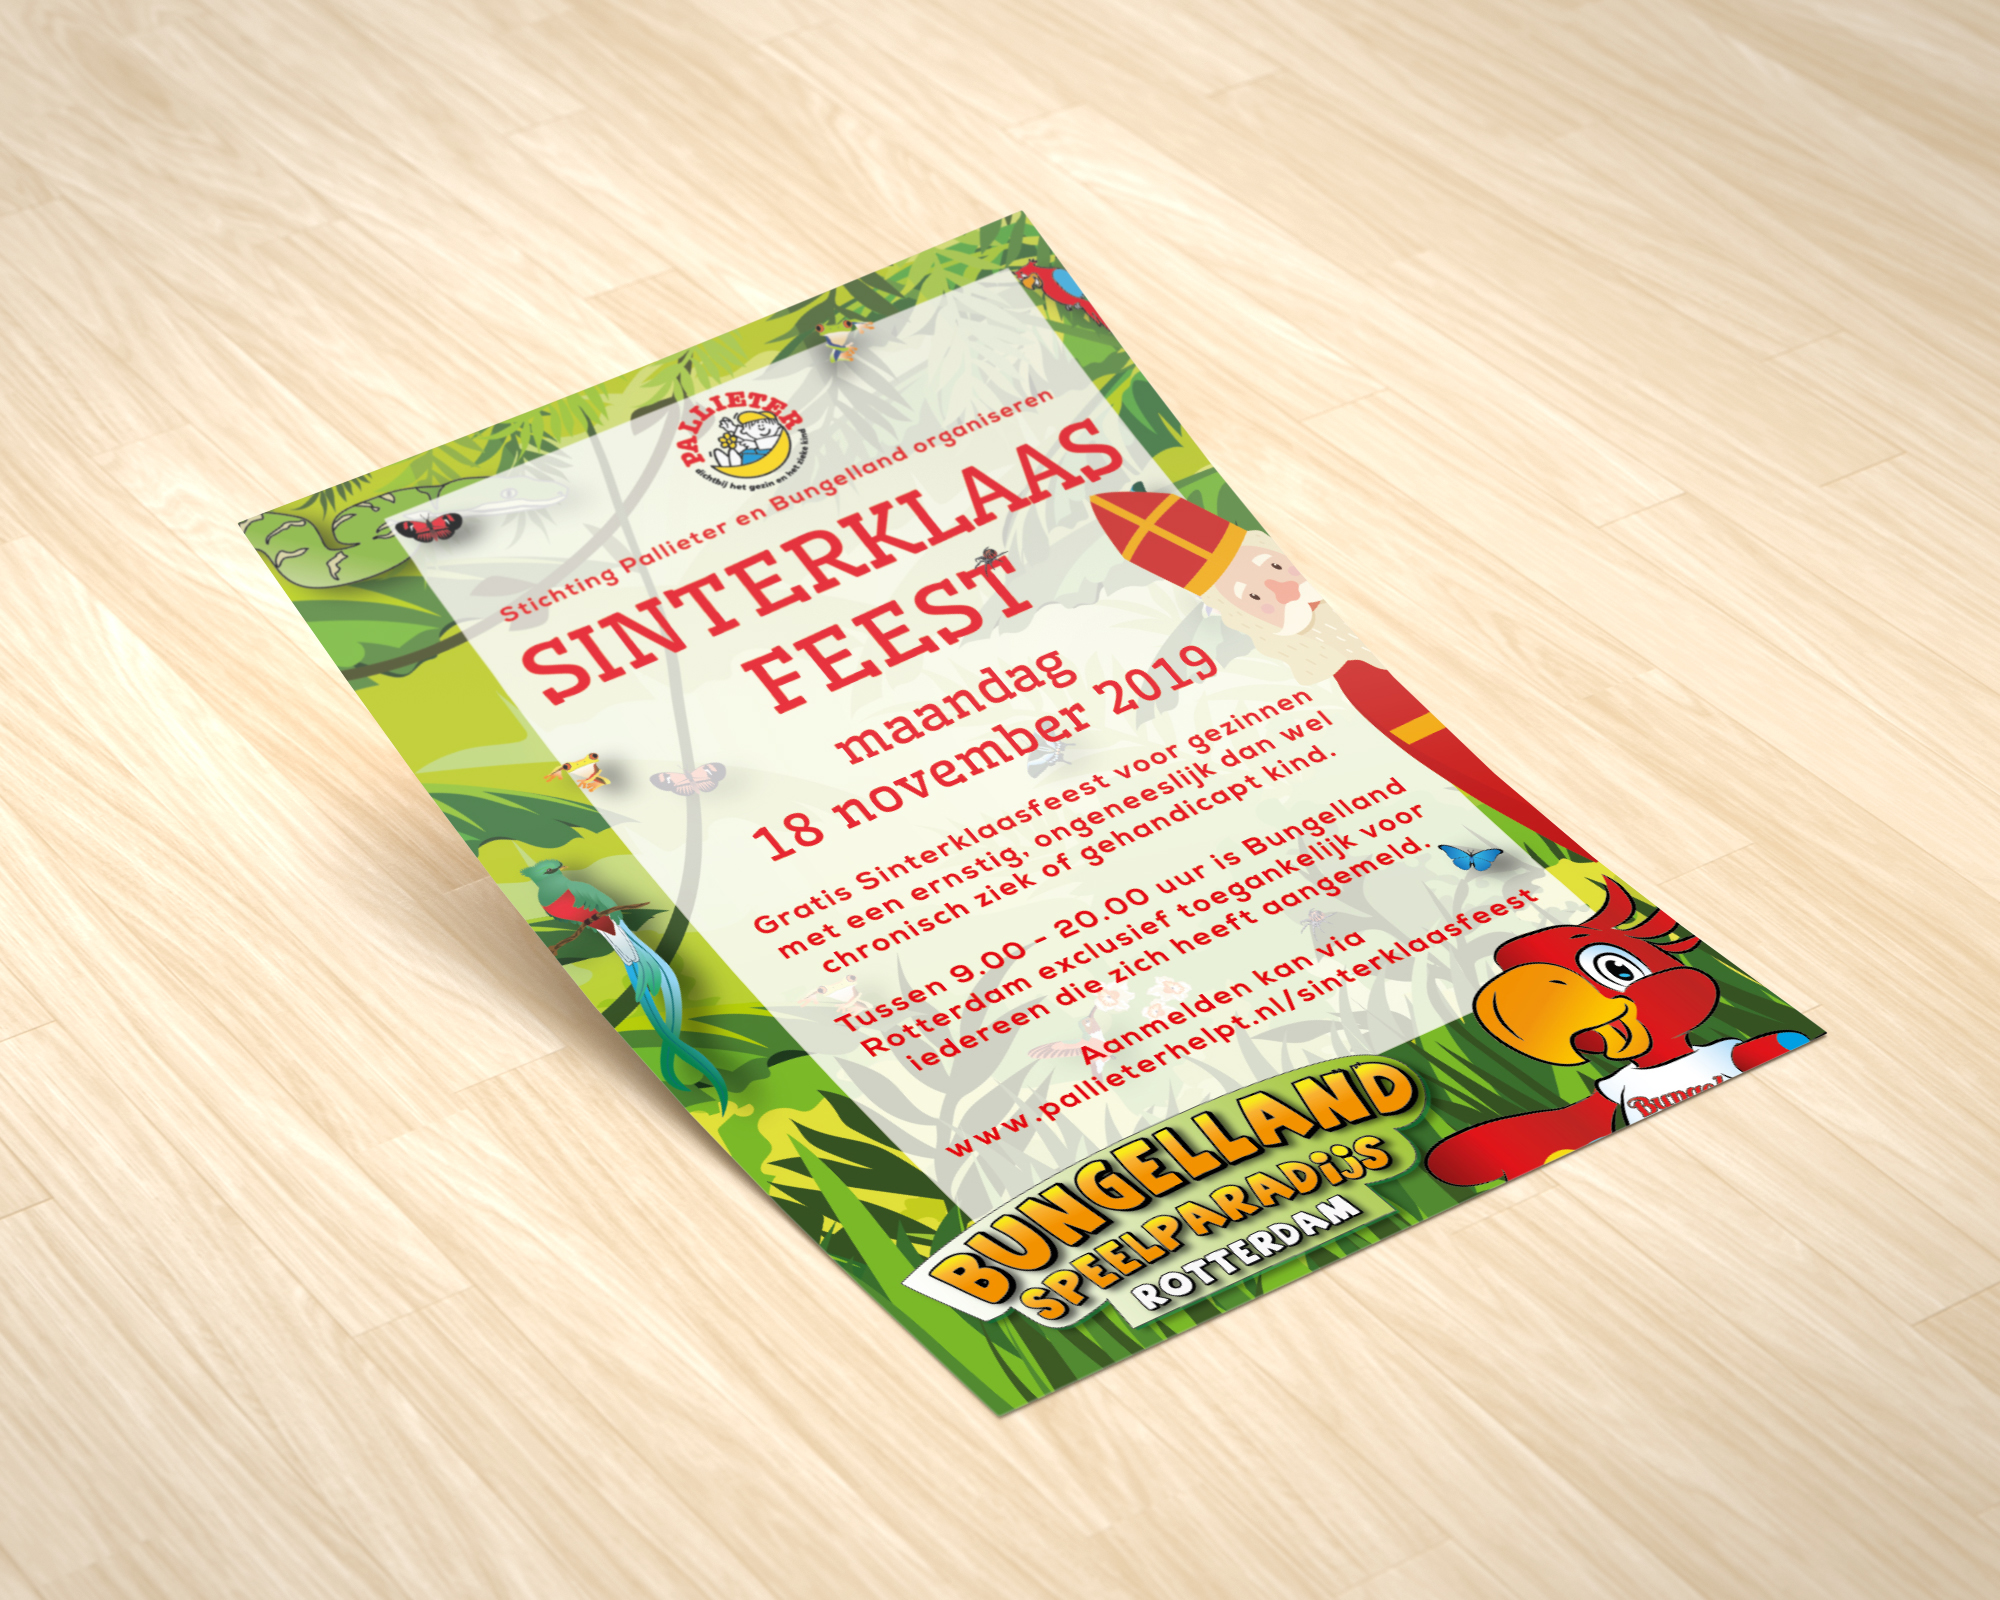 Flyer Sinterklaasfeest